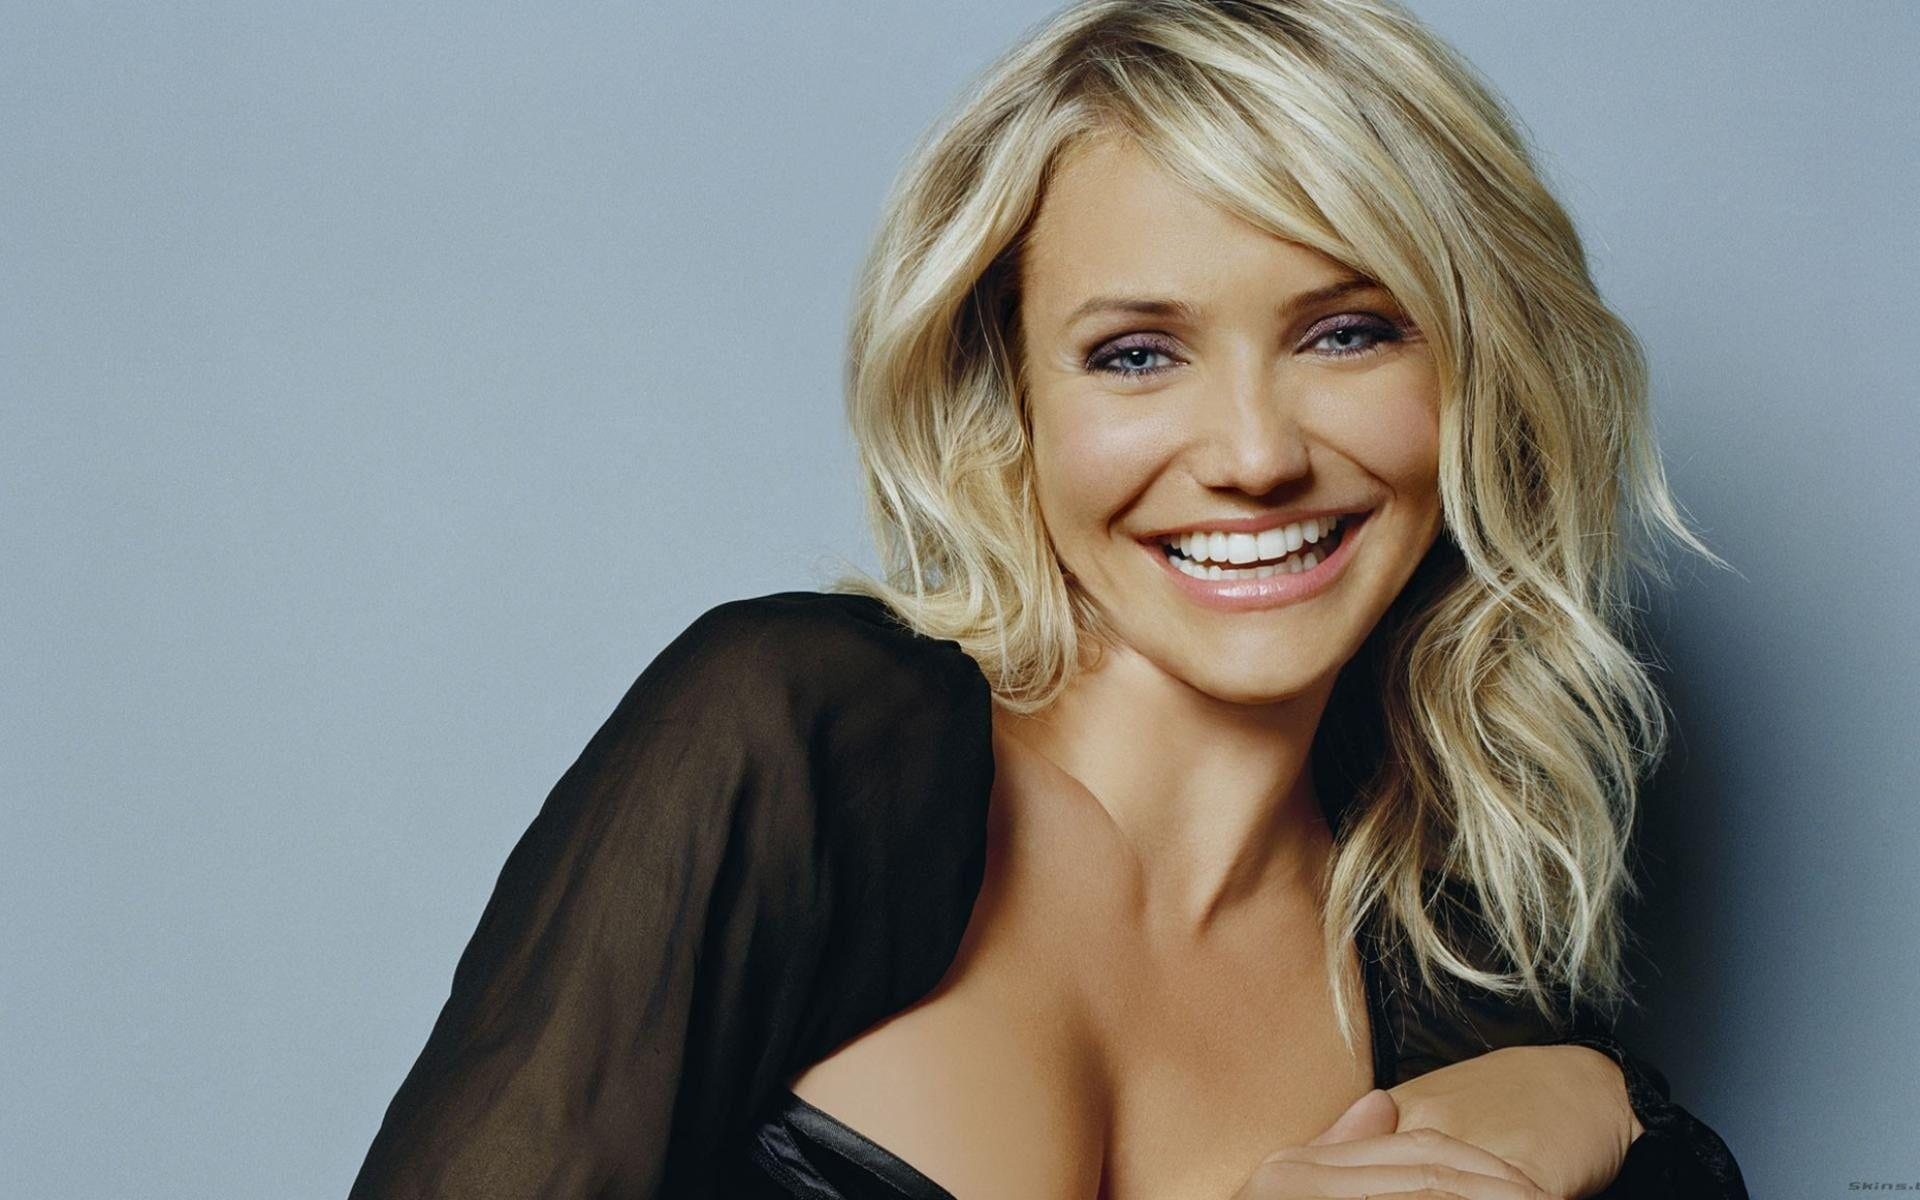 Cameron Diaz HD wallpaper | Wallpaper Flare